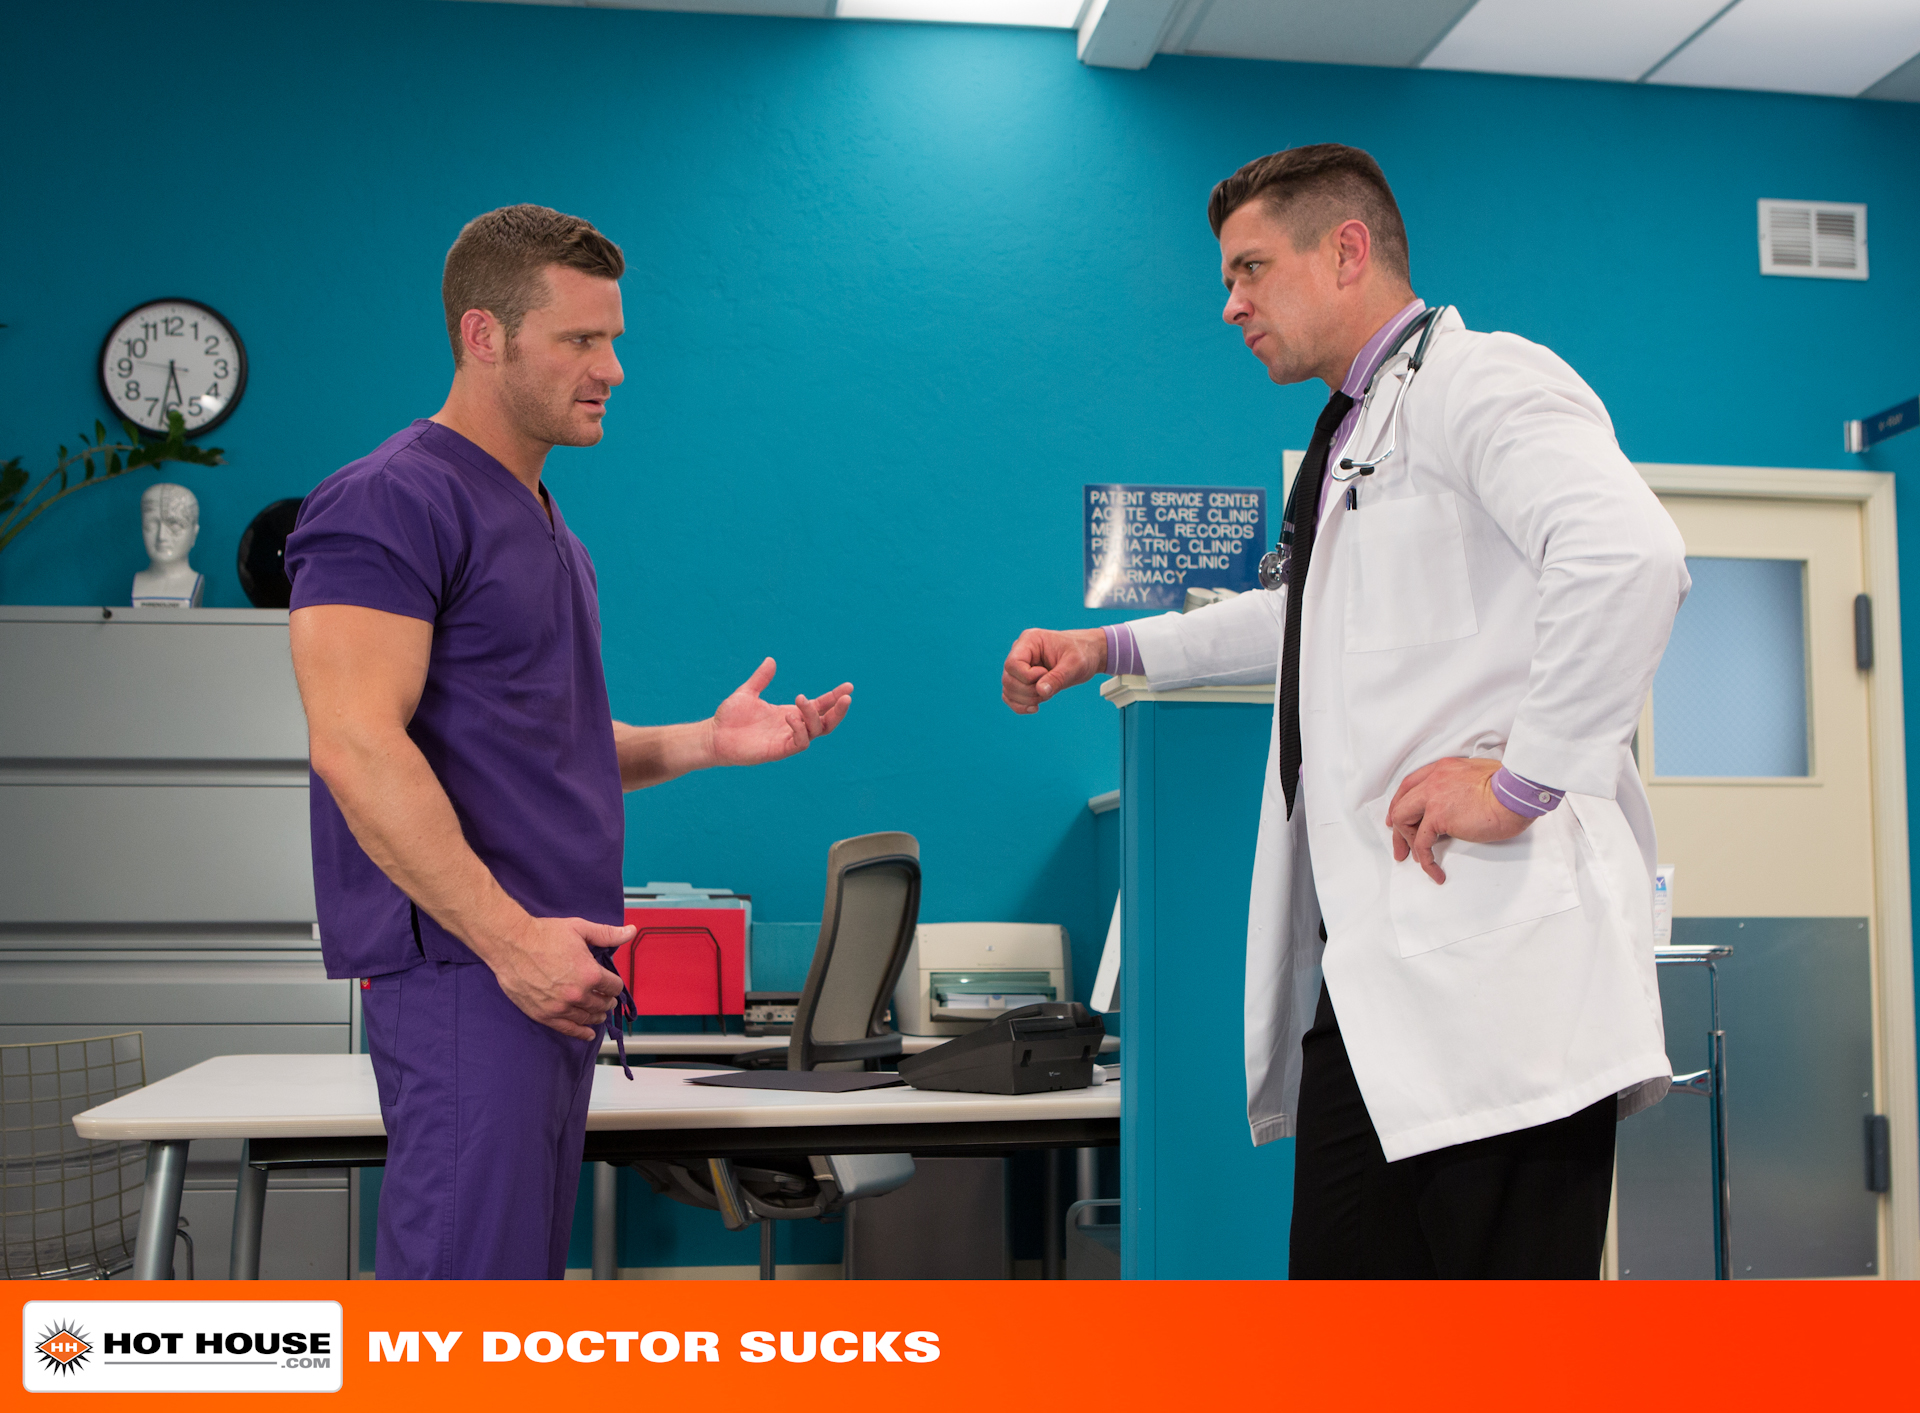 Hot House – My Doctor Sucks (Scene 4)